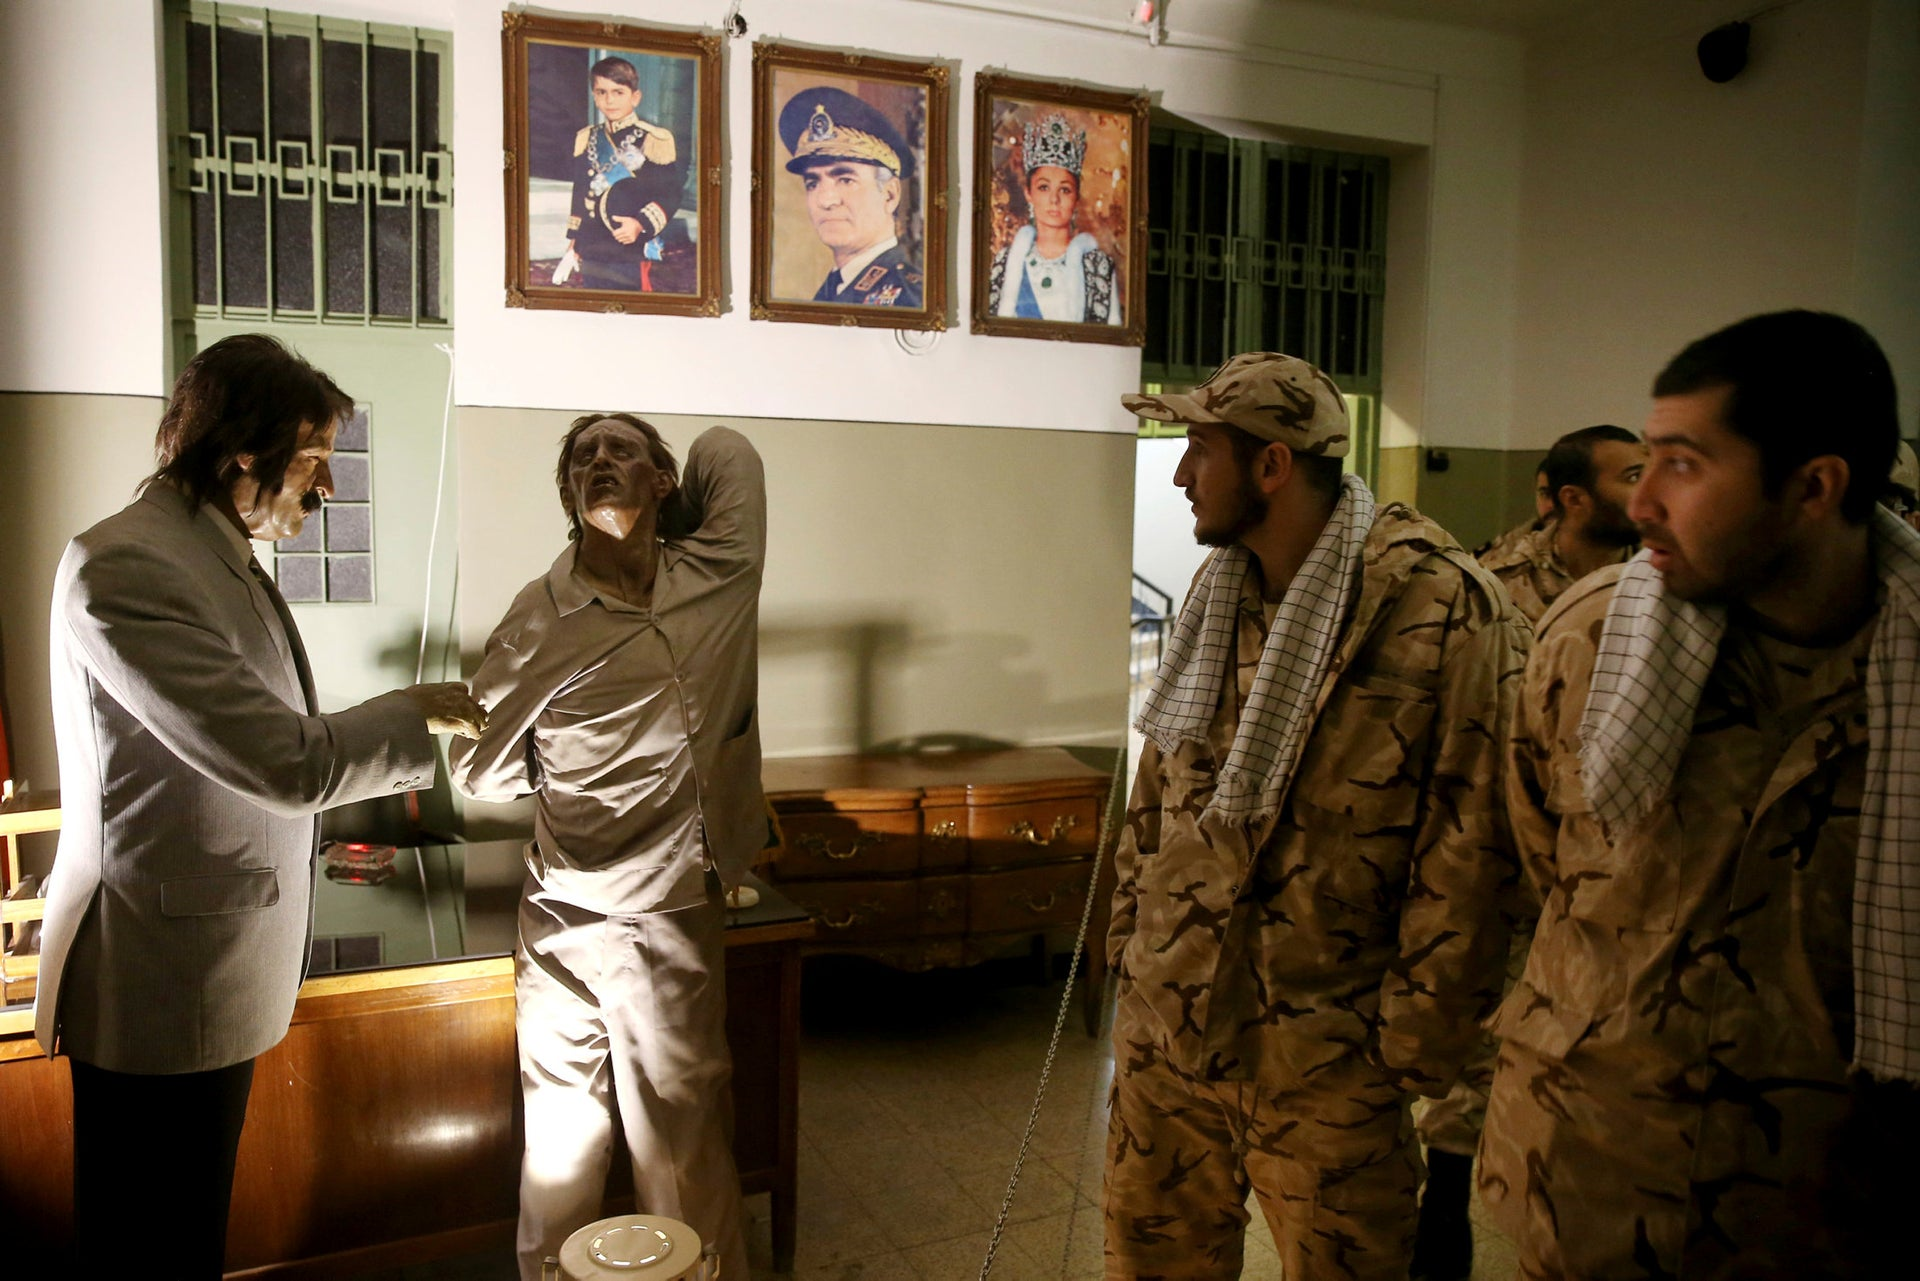 Iranian Revolutionary Guard soldiers look at an exhibition at former SAVAK prison in Tehran, Iran, January 7, 2019.